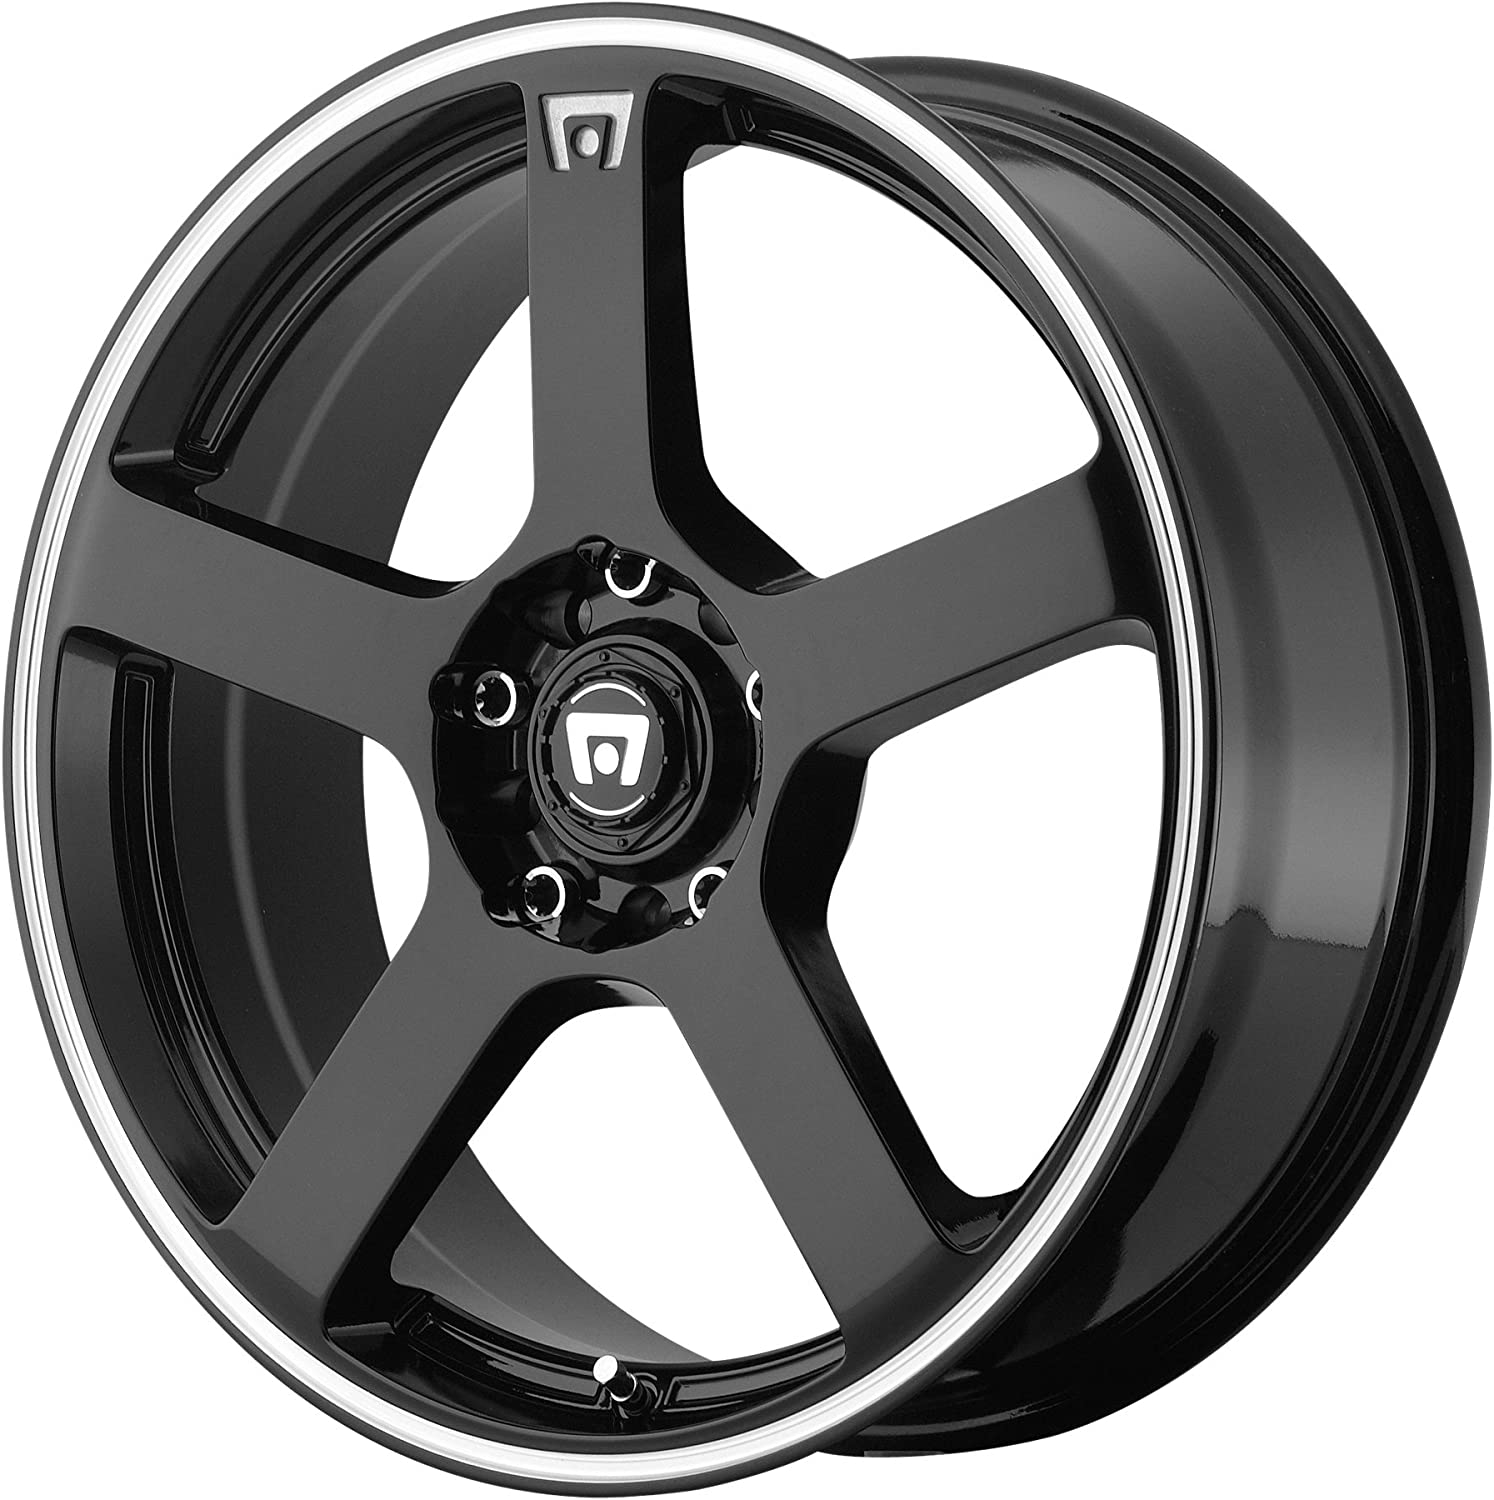 "Motegi RacingMR116 Wheel with Gloss Black Finish (15x6.5""/4x4.25"")"